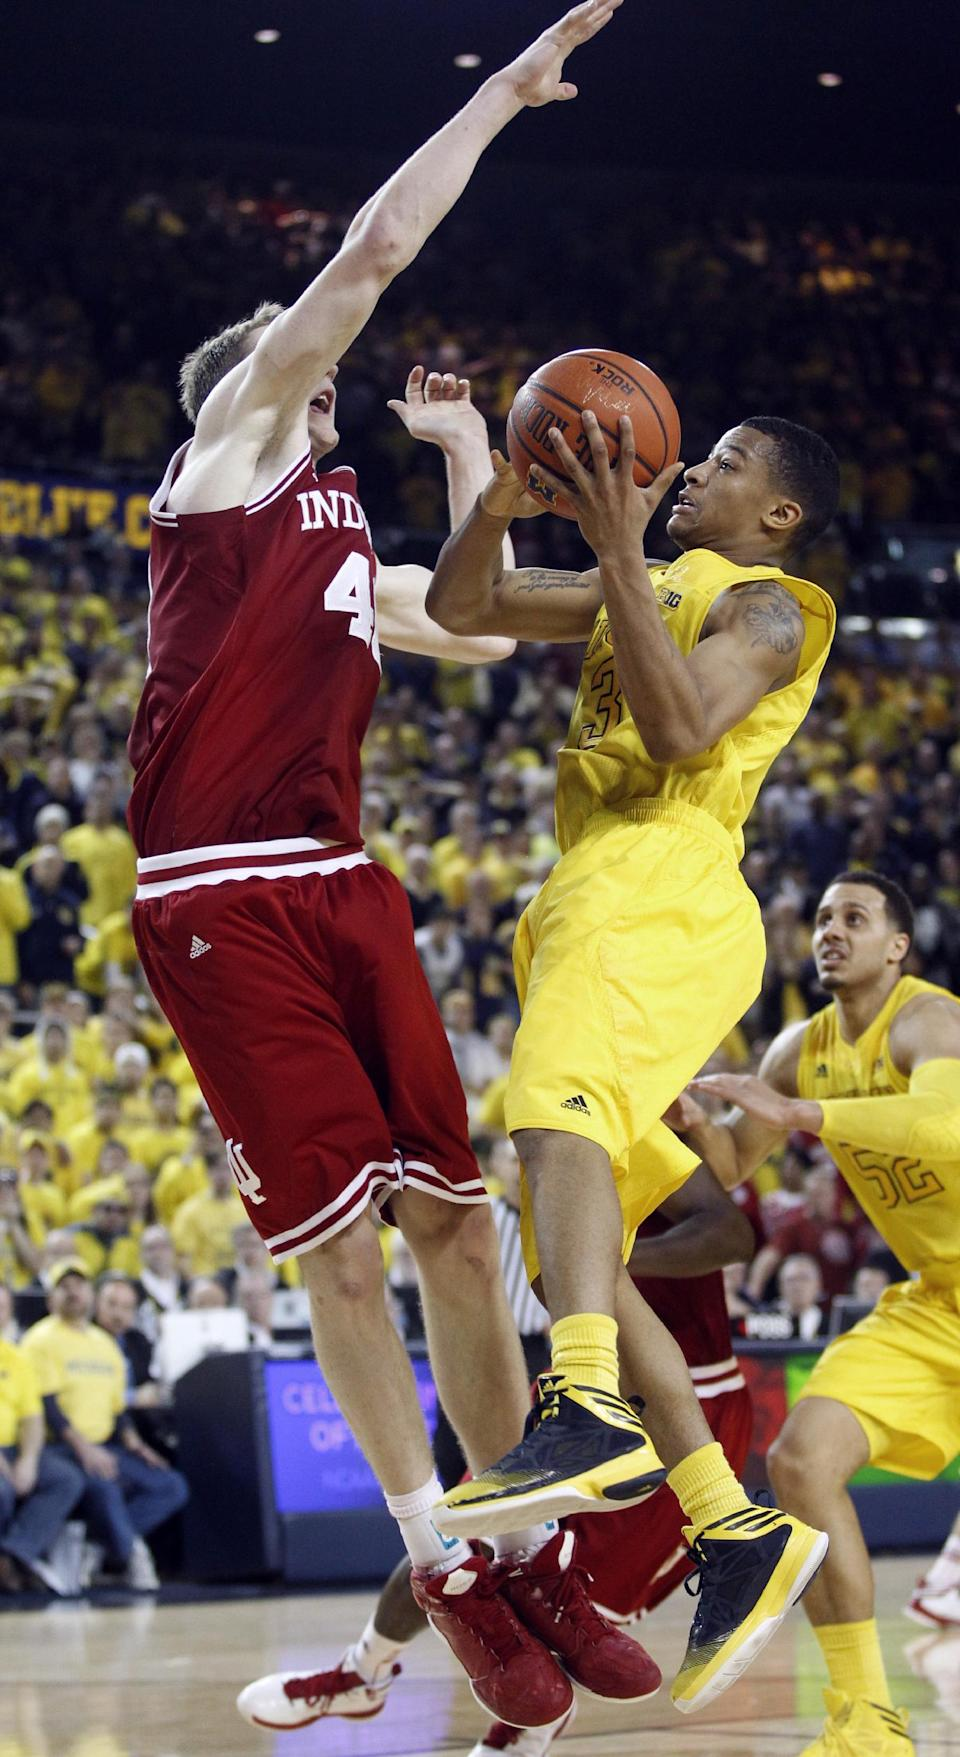 Indiana forward Cody Zeller (40) defends against the last shot of the game by Michigan guard Trey Burke (3) in an NCAA college basketball game Sunday, March 10, 2013, in Ann Arbor, Mich. Burke missed the shot to give Indiana a 72-71 win. (AP Photo/Duane Burleson)